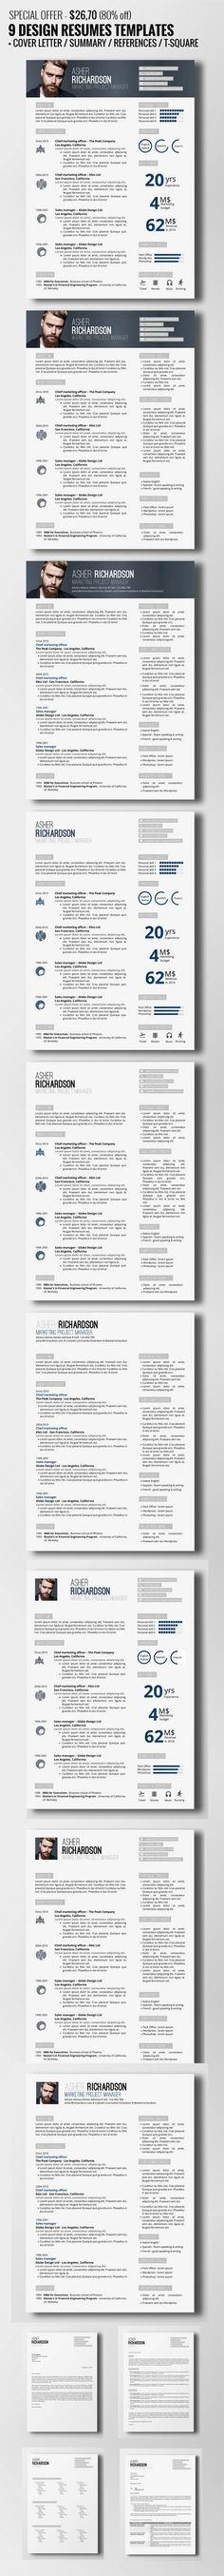 435 best Resume images on Pinterest Resume design, Design resume - font for a resume